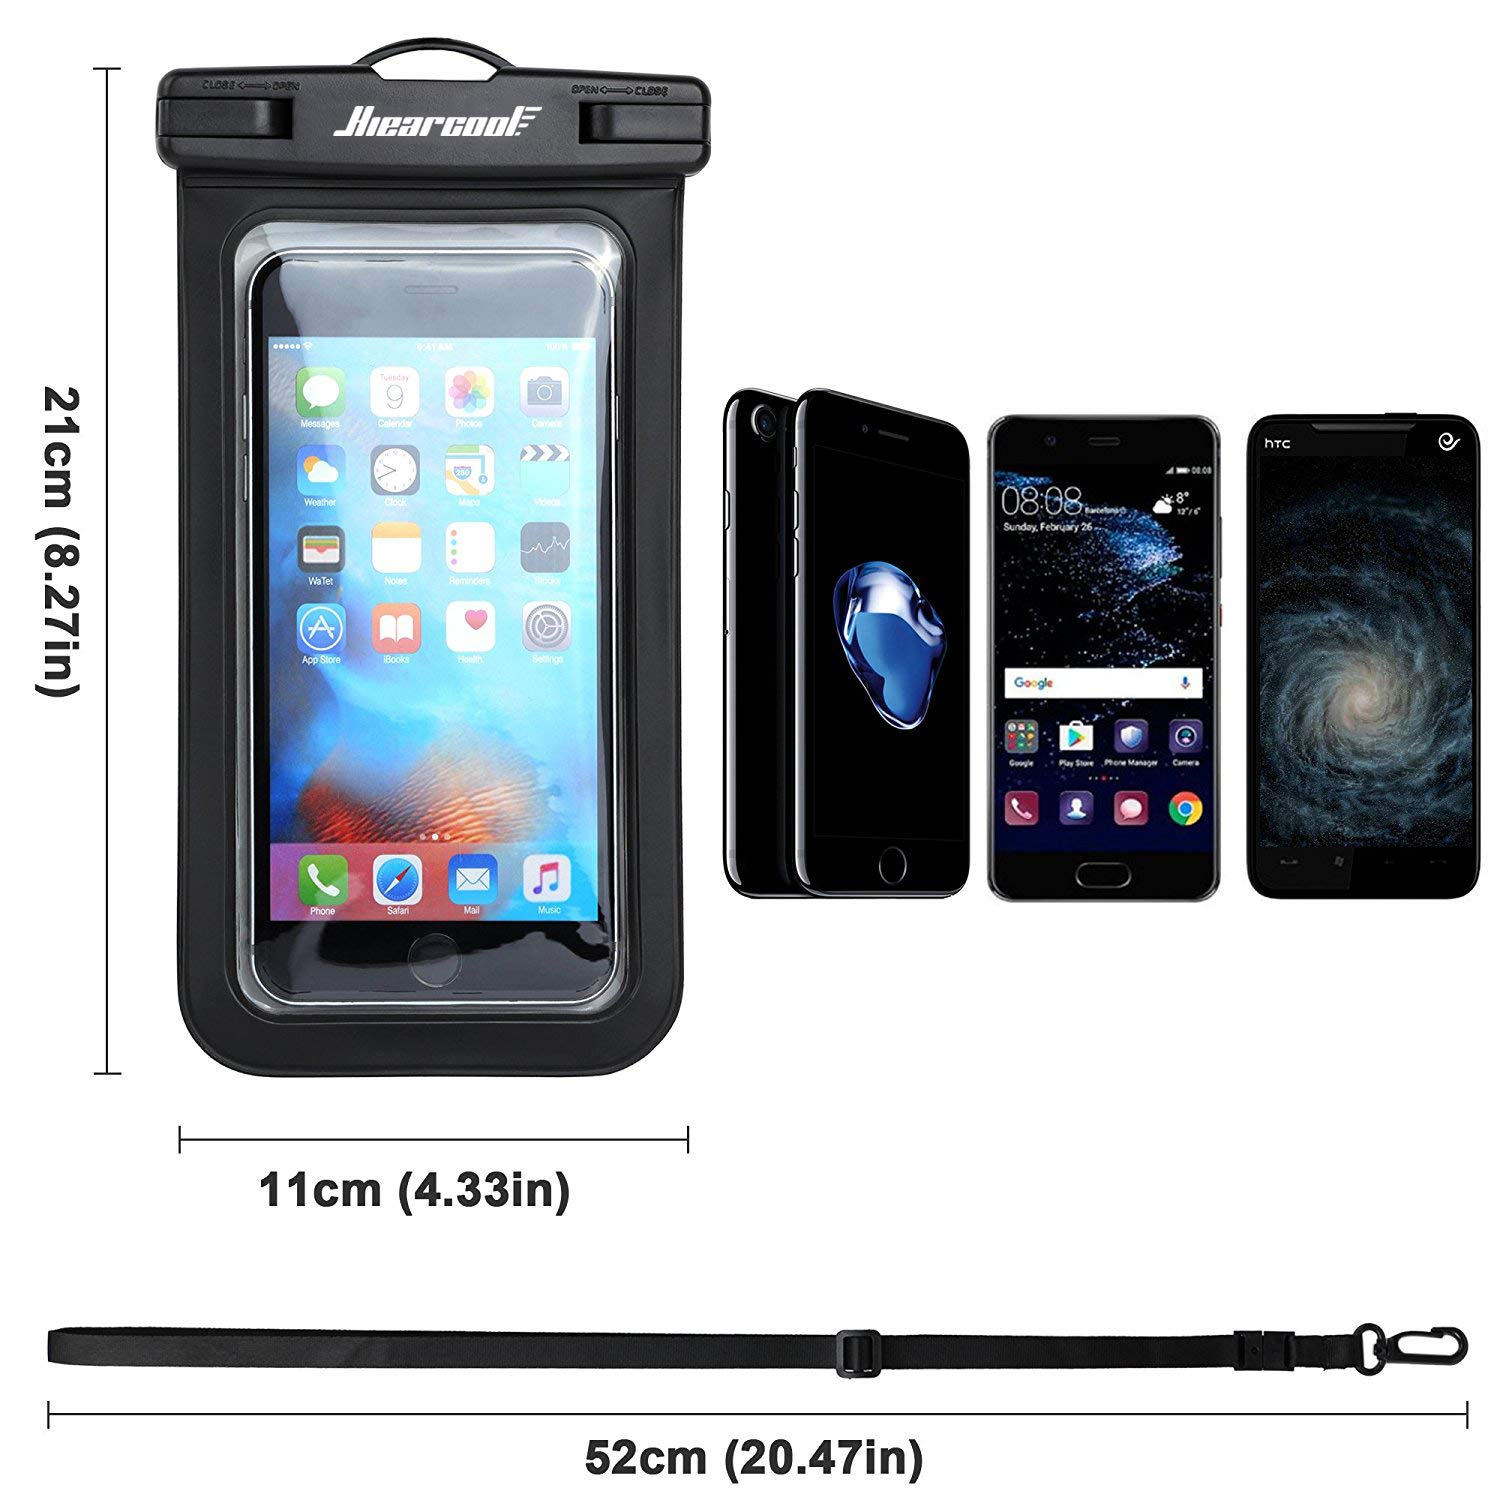 Universal Waterproof Case - Ansot IPX8 Waterproof Phone Pouch - Cellphone Dry Bag for iPhone X/8/ 8plus/7/7plus/6s/6/6s Plus Samsung Galaxy s8/s7 Google Pixel 2 HTC LG Sony Moto up to 7.0'' - 2 Pack by Hiearcool (Image #3)